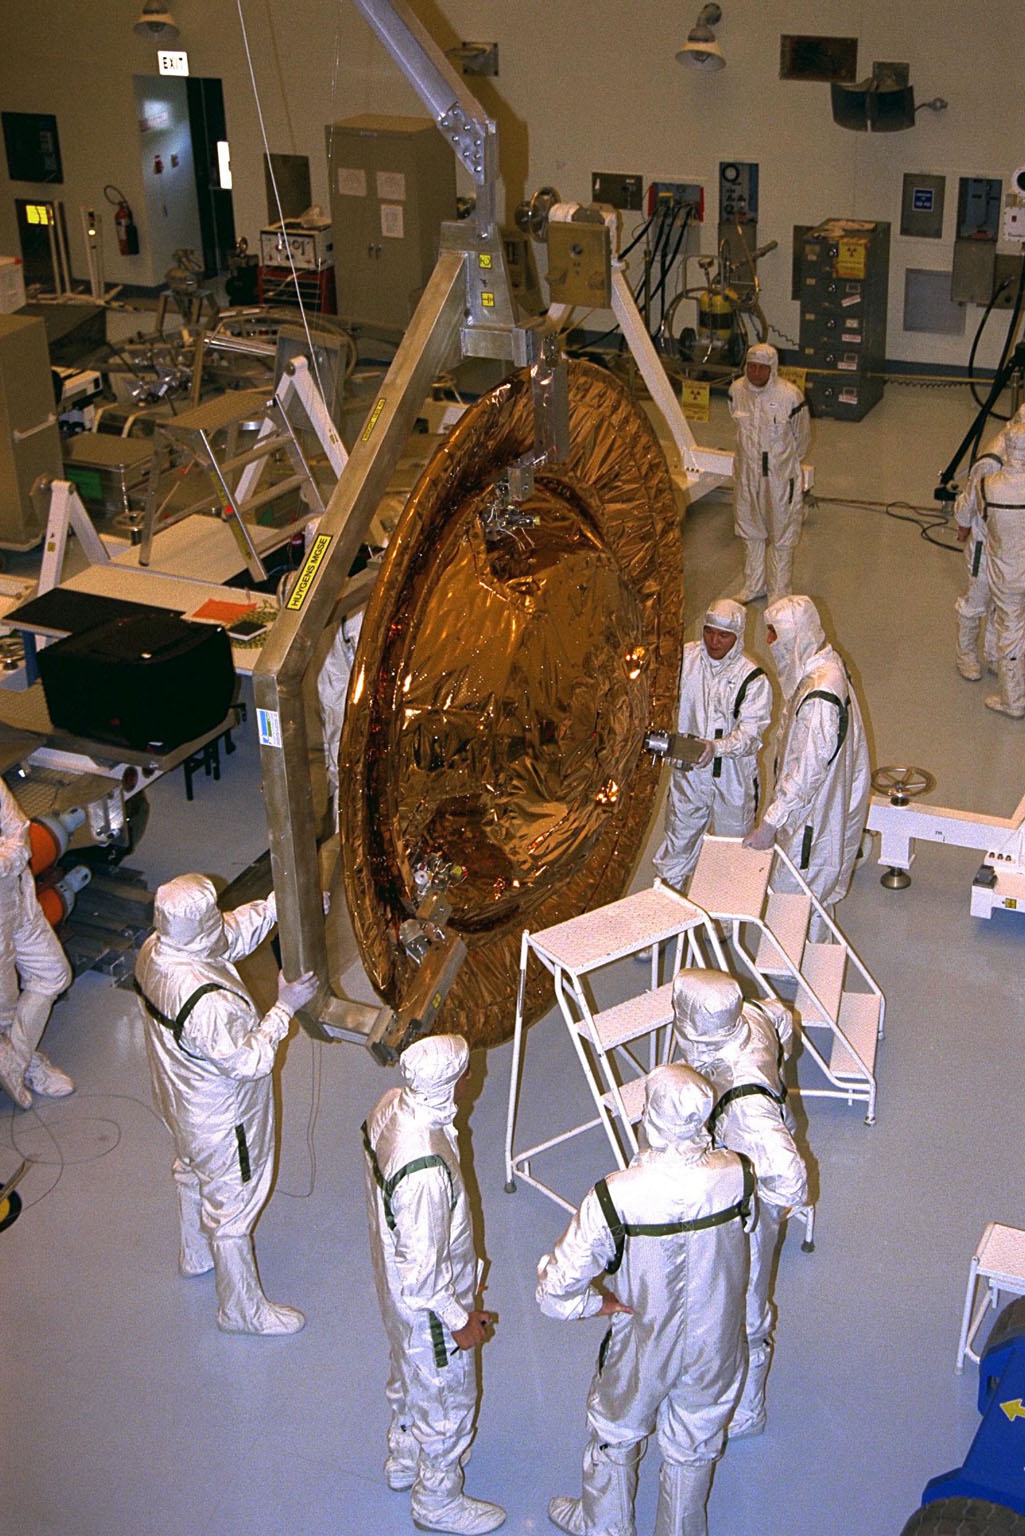 The Huygens probe is installed into the Cassini orbiter in the Payload Hazardous Servicing Facility (PHSF)